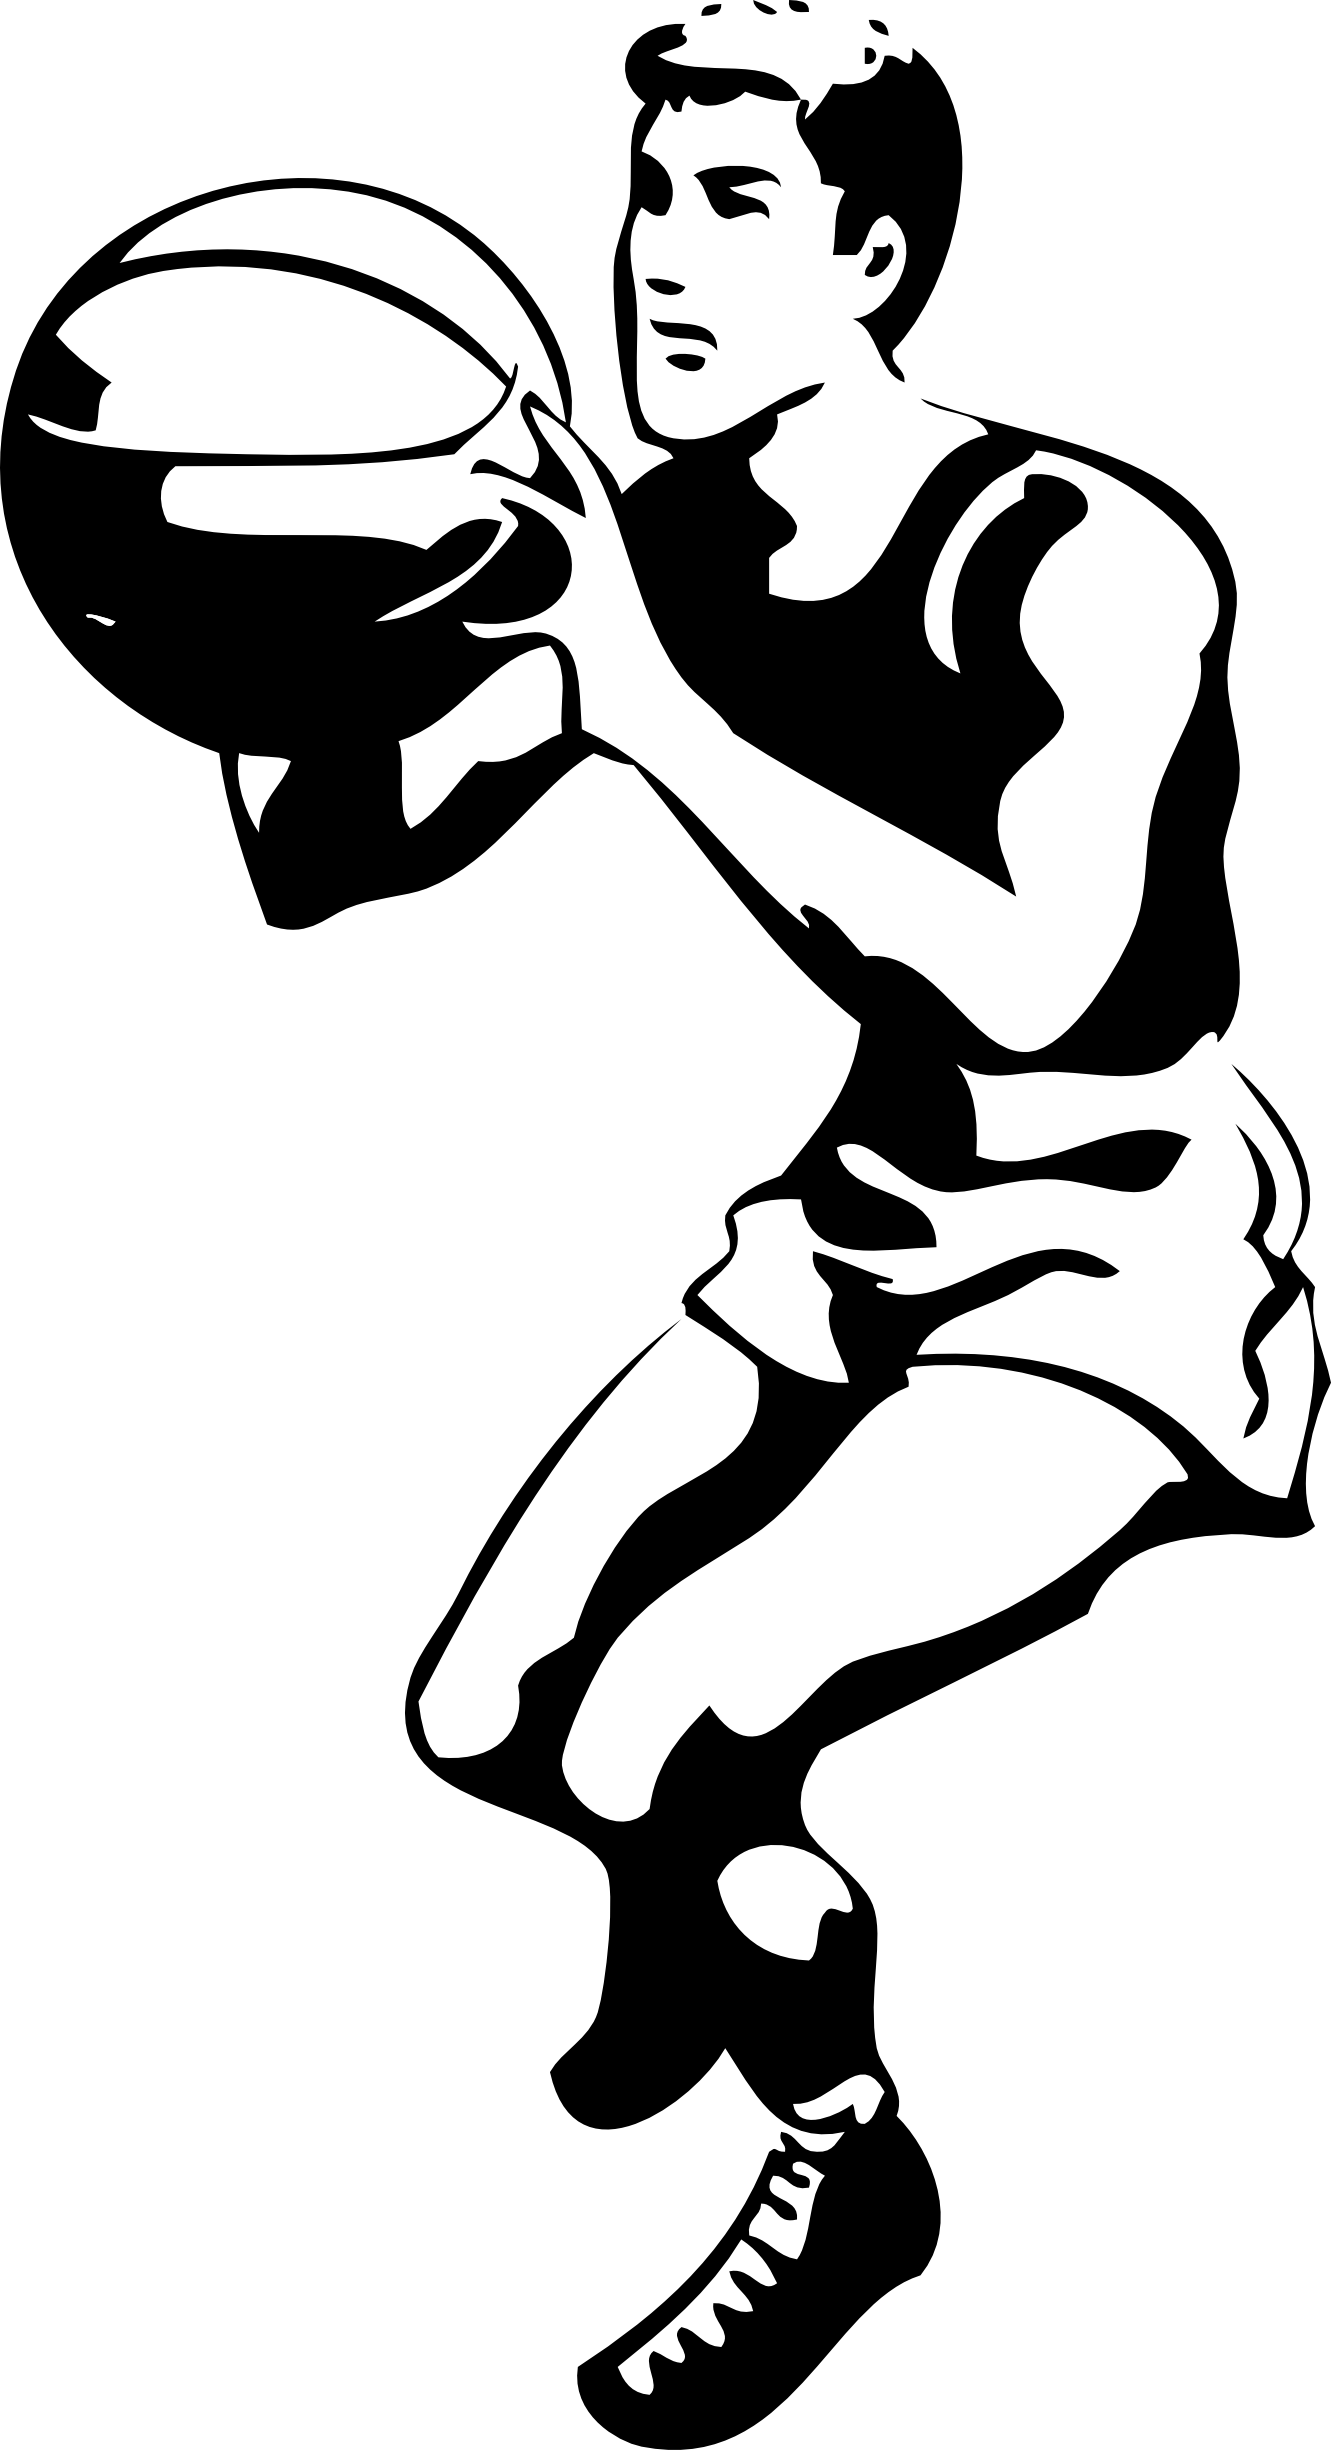 Female basketball player clipart clipart library Basketball Player Clipart Black And White | Clipart Panda - Free ... clipart library